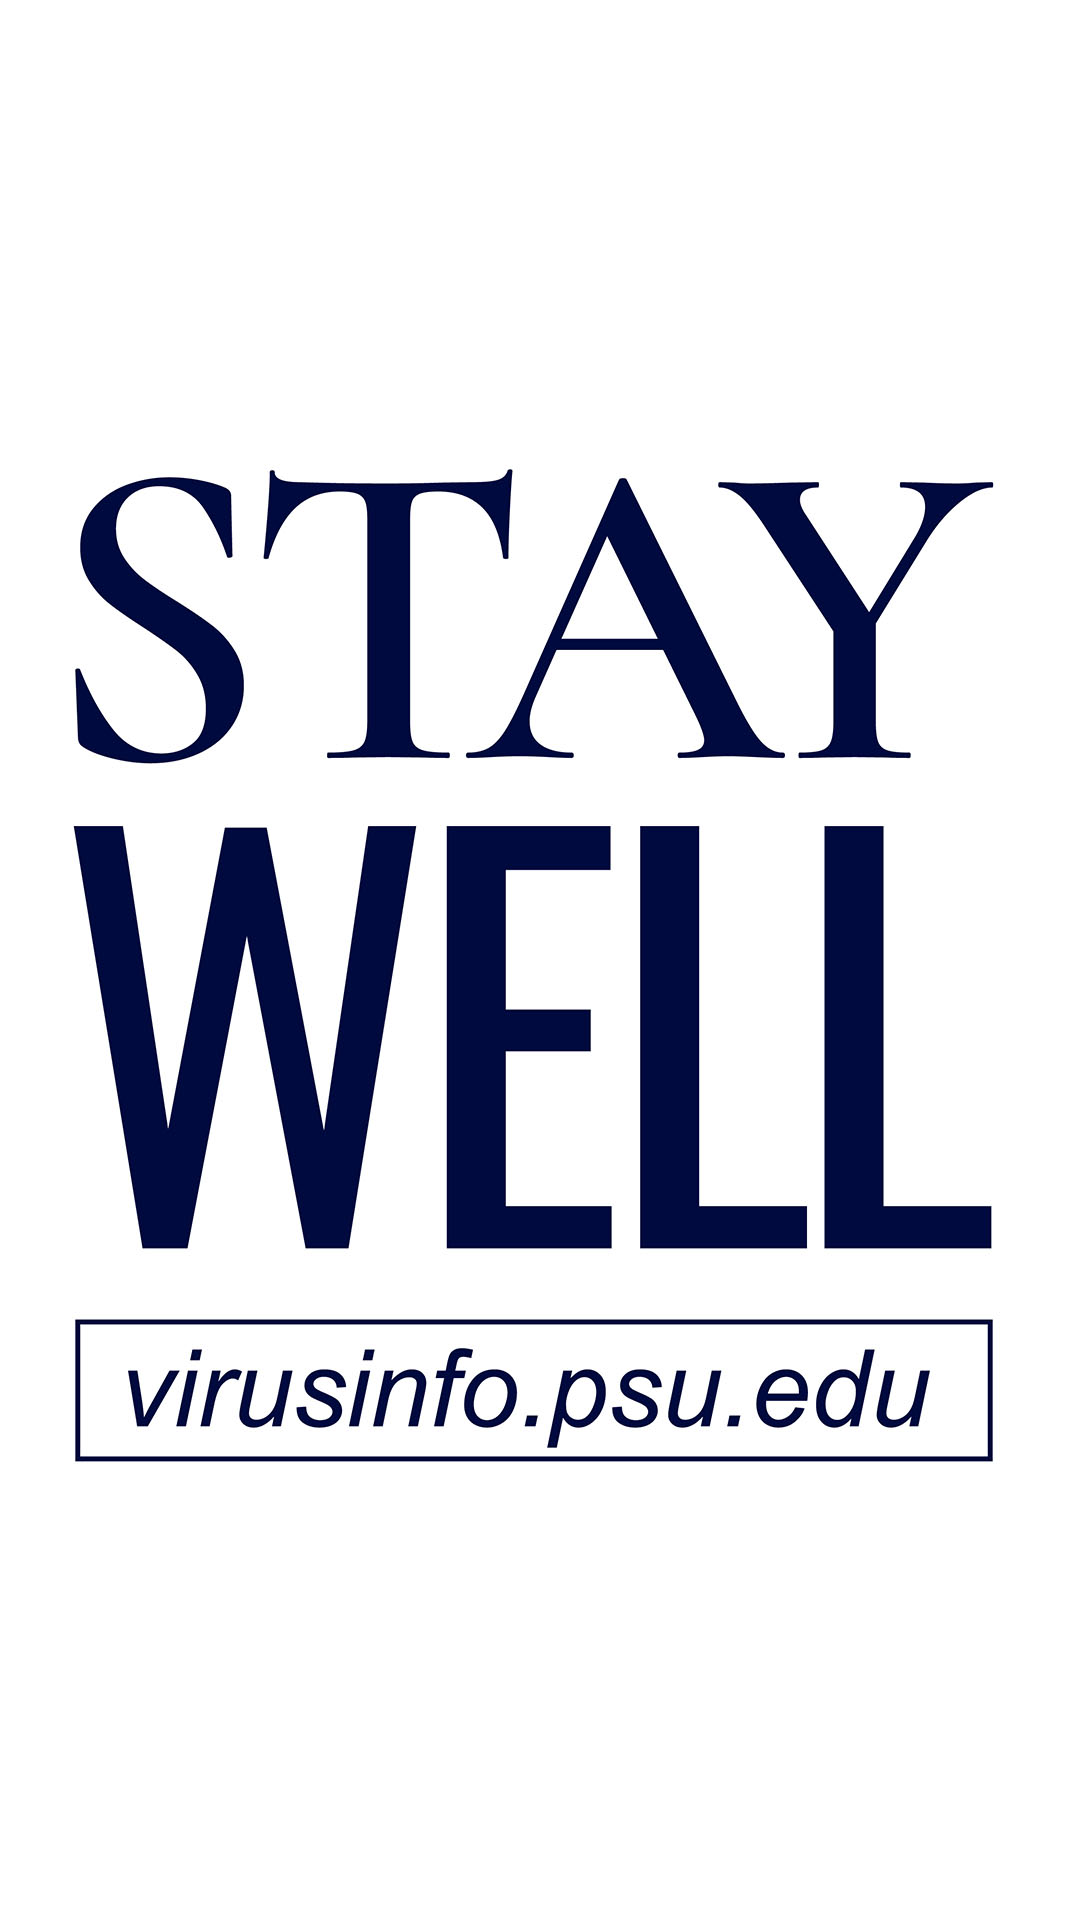 Stay well title graphic